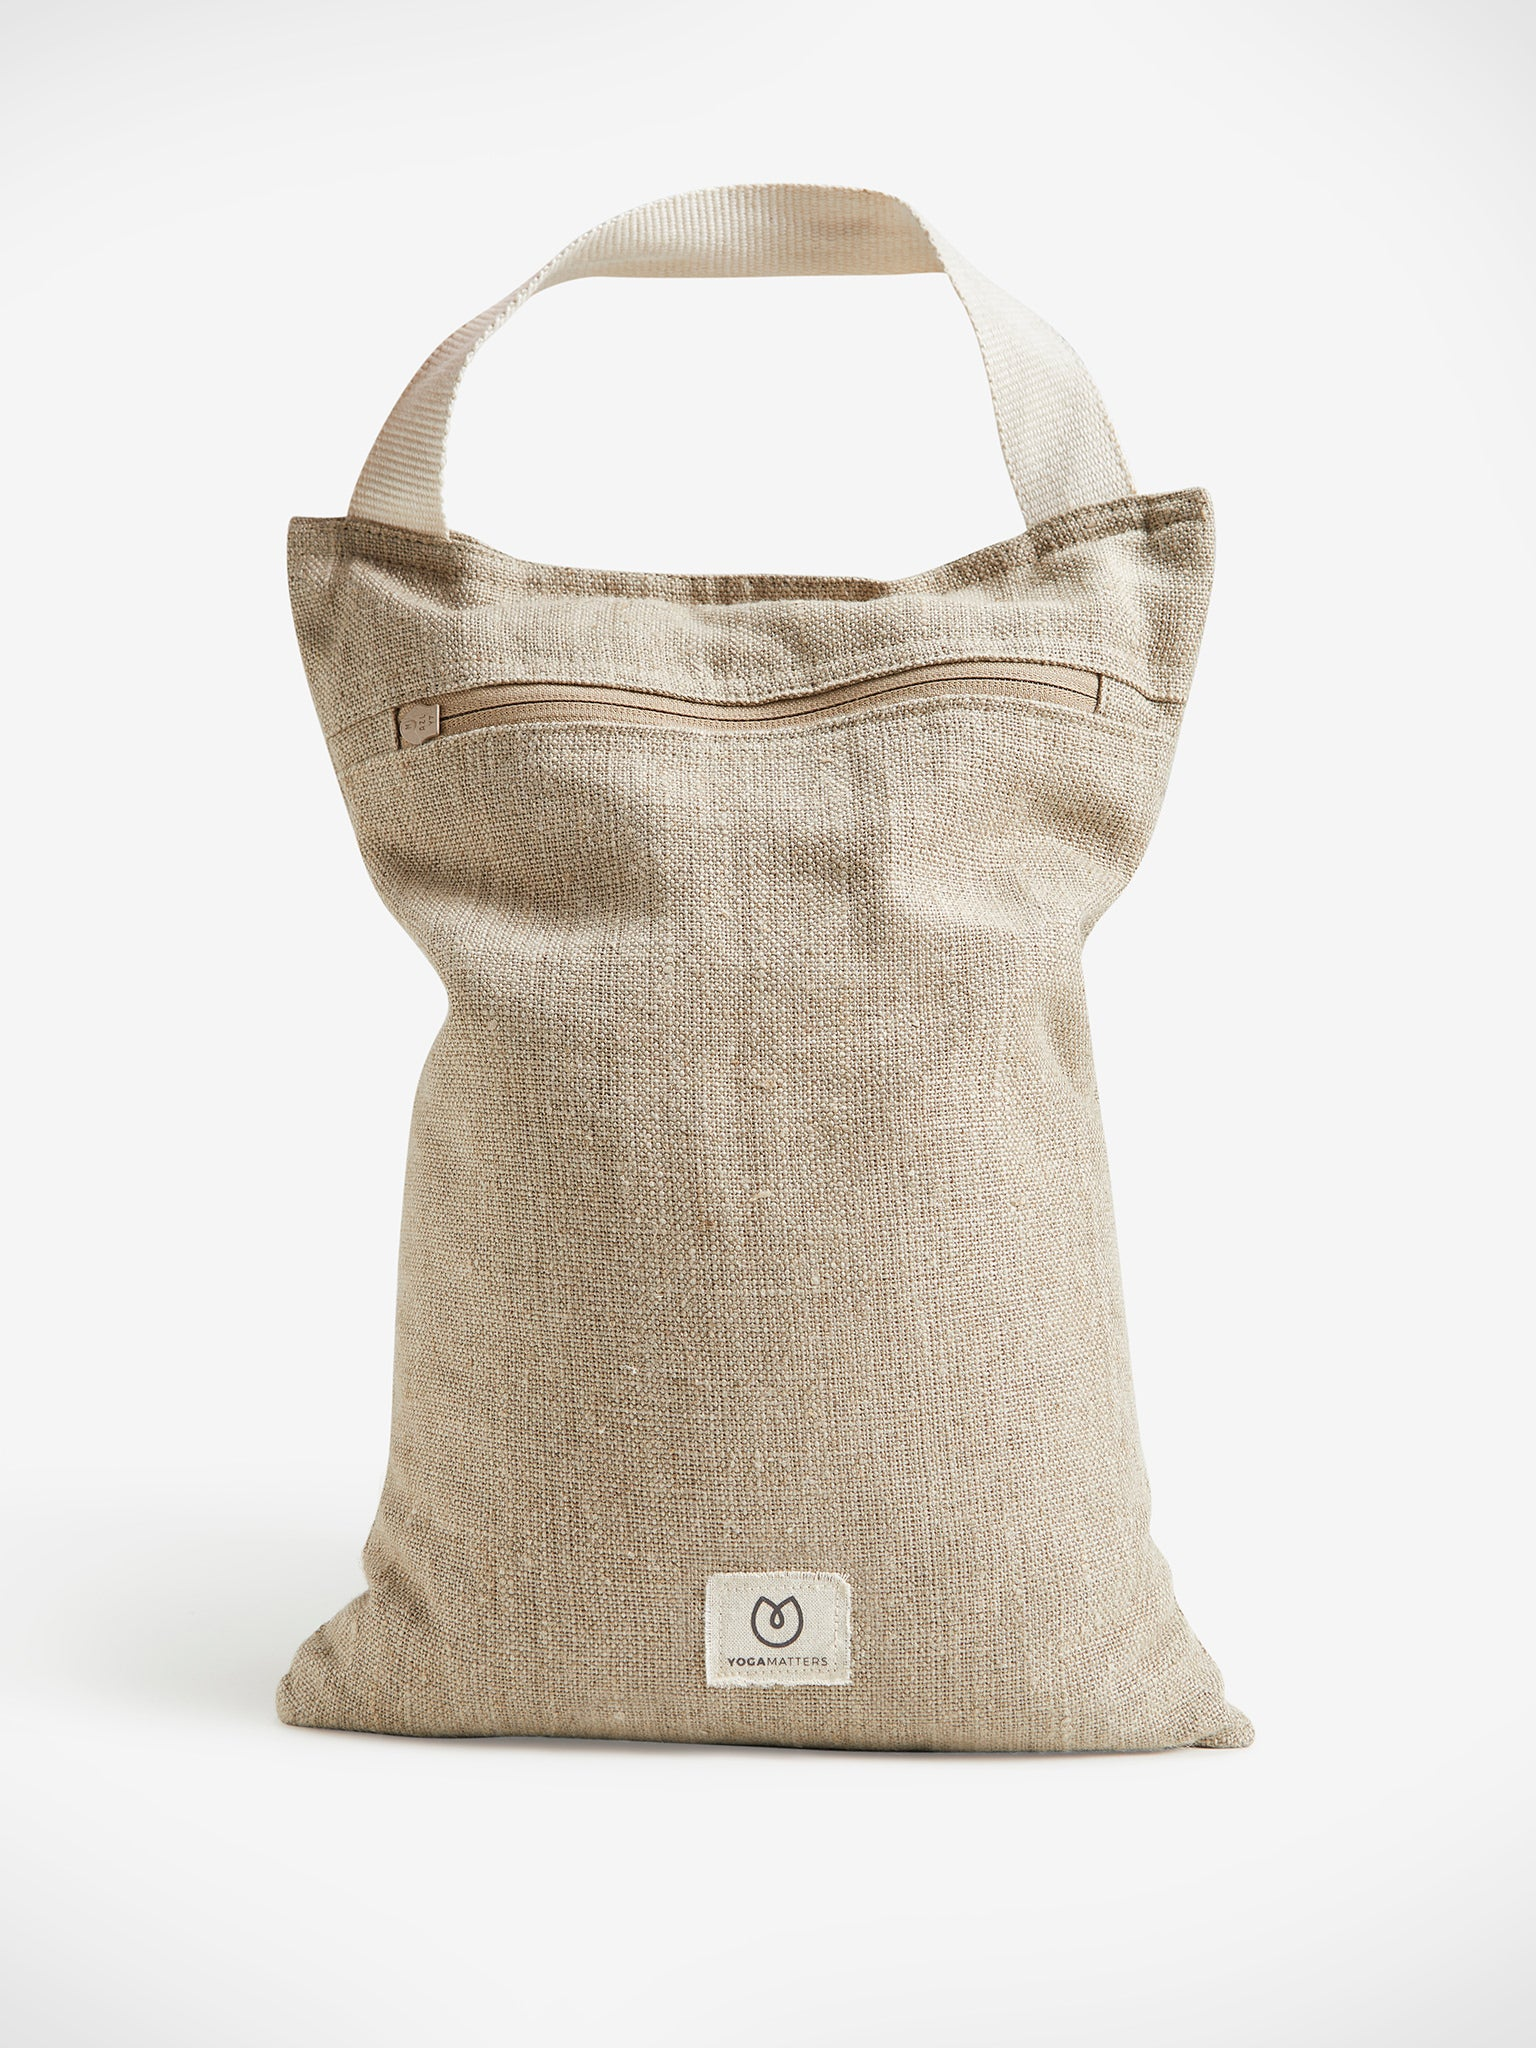 Yogamatters Hemp Sandbag - Filled